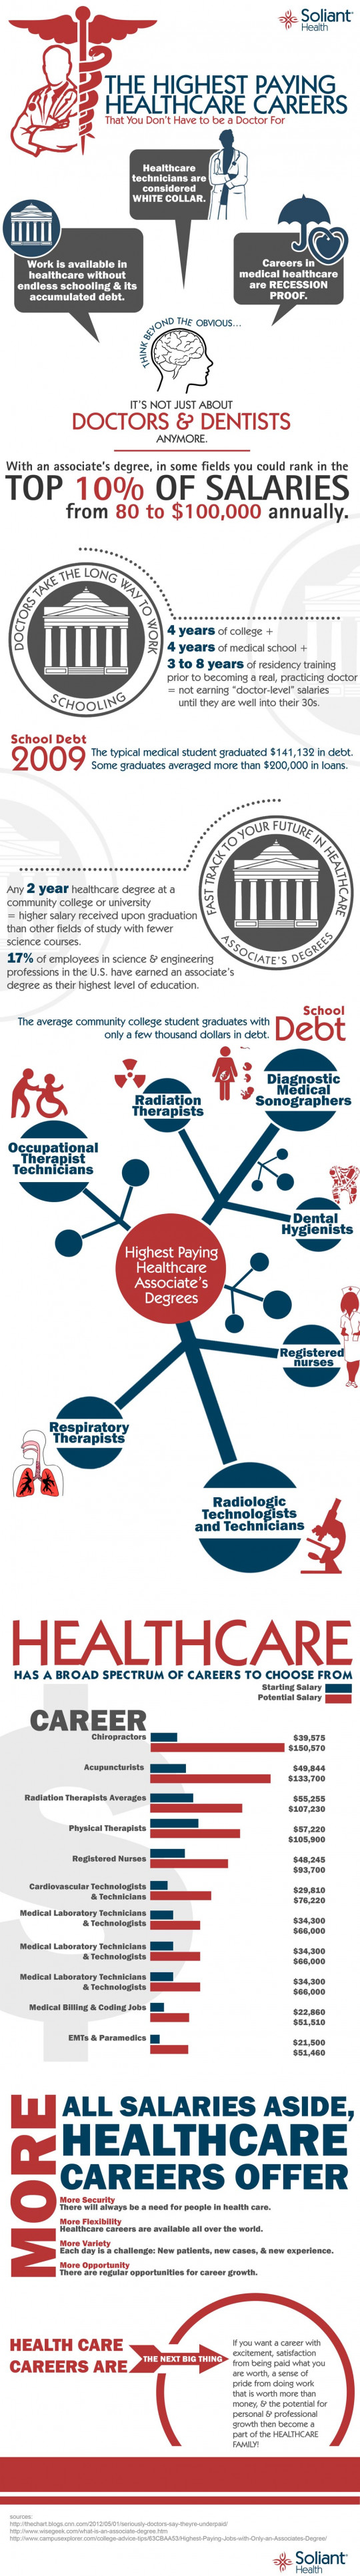 Highest paying healthcare careers Infographic